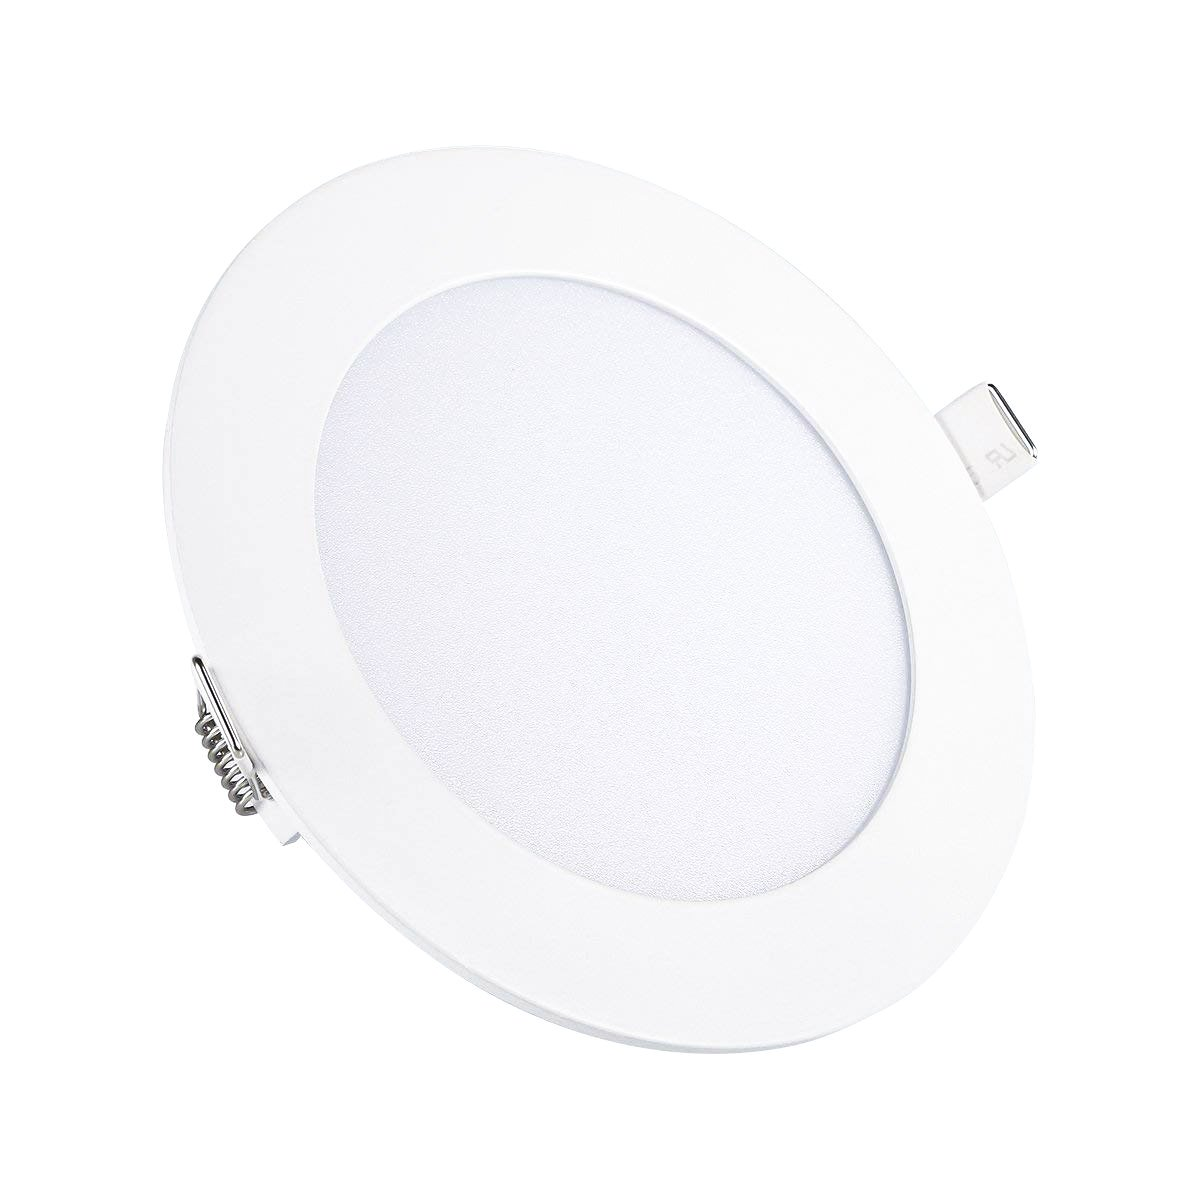 Ceiling Lights, TryLight LED Flush Recessed Dimmable Panel Light, Downlights 9W 4000K for Home Office